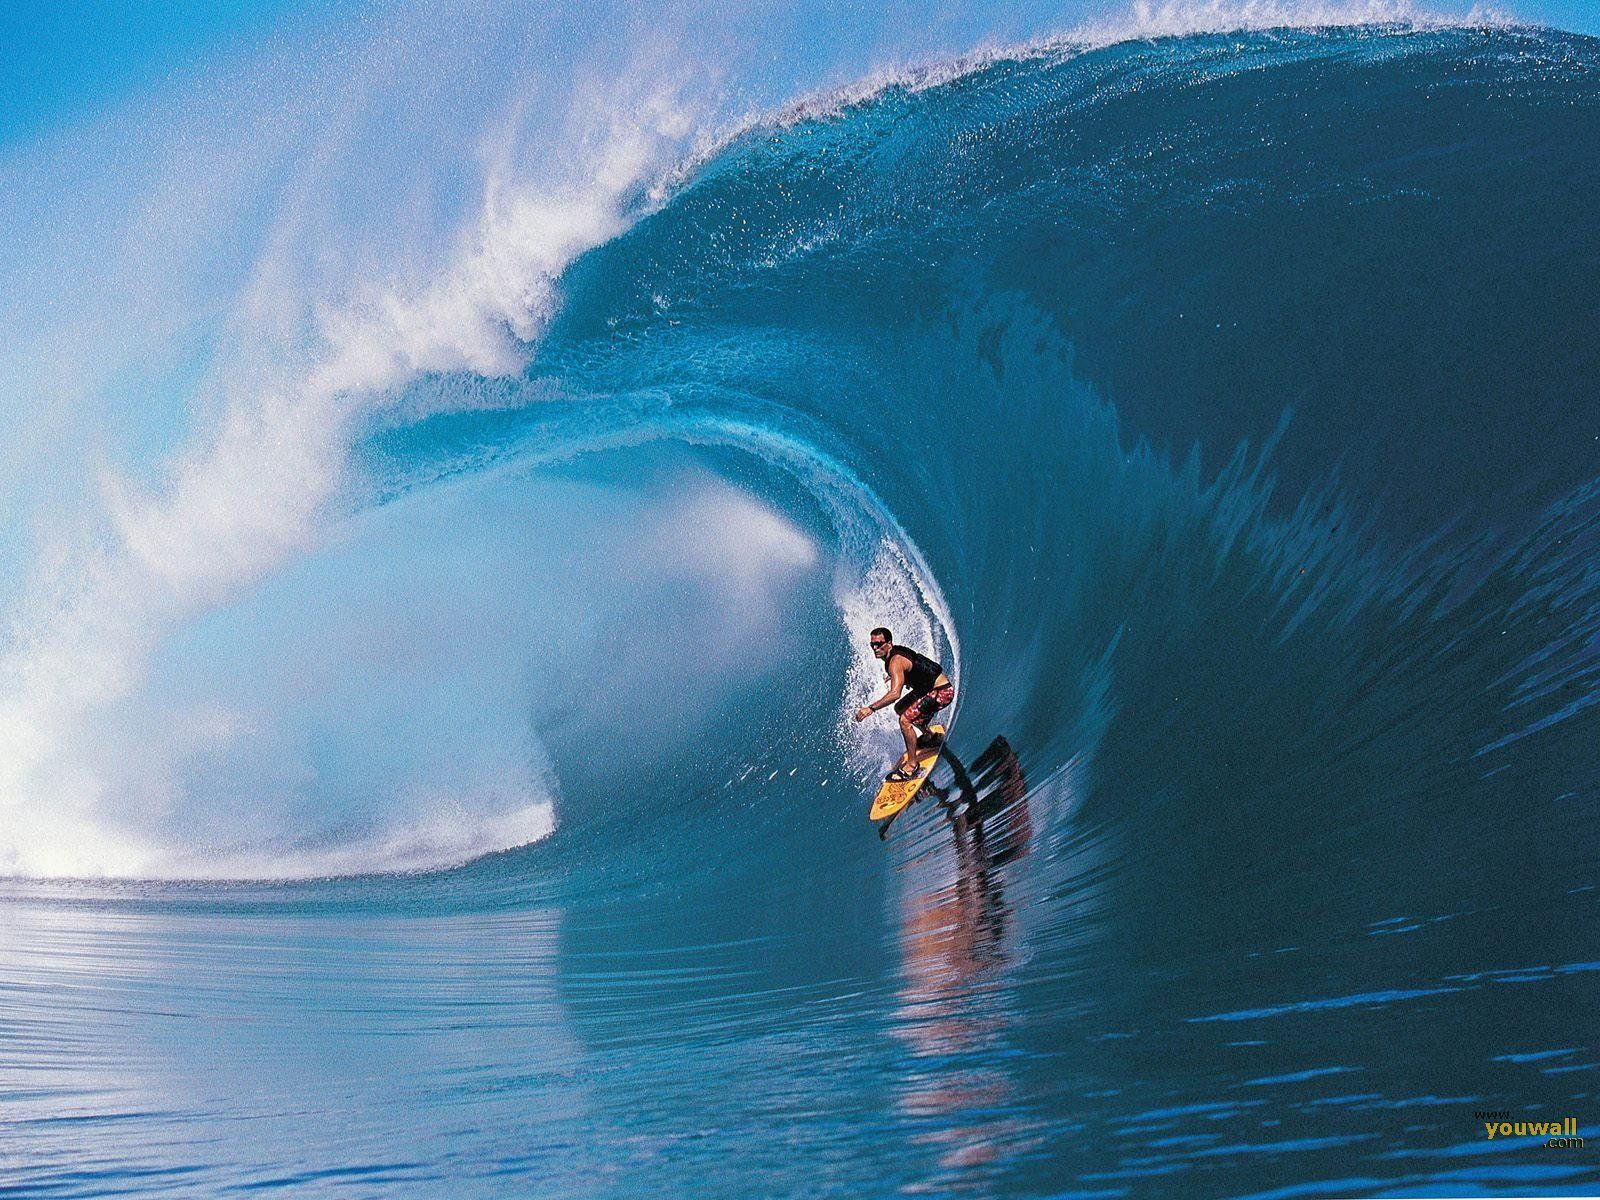 Surf Water Hd Wallpaper Projects To Try Big Wave Surfing